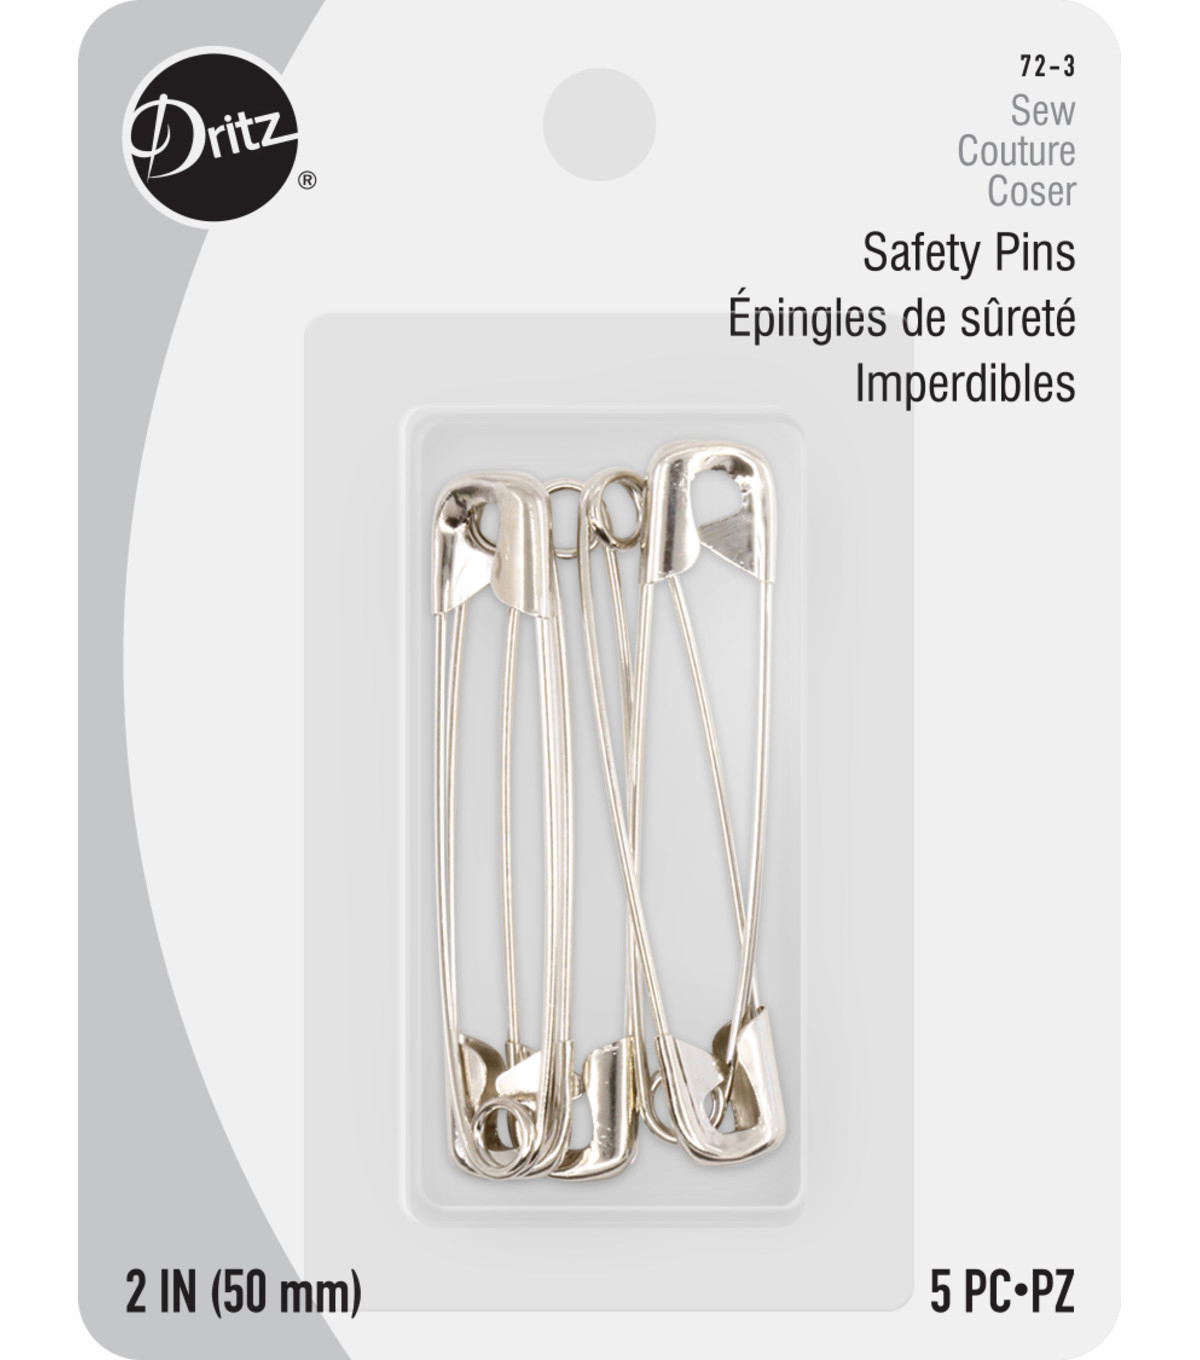 Dritz Nickel Plated Safety Pins, Size 3 6/pkg